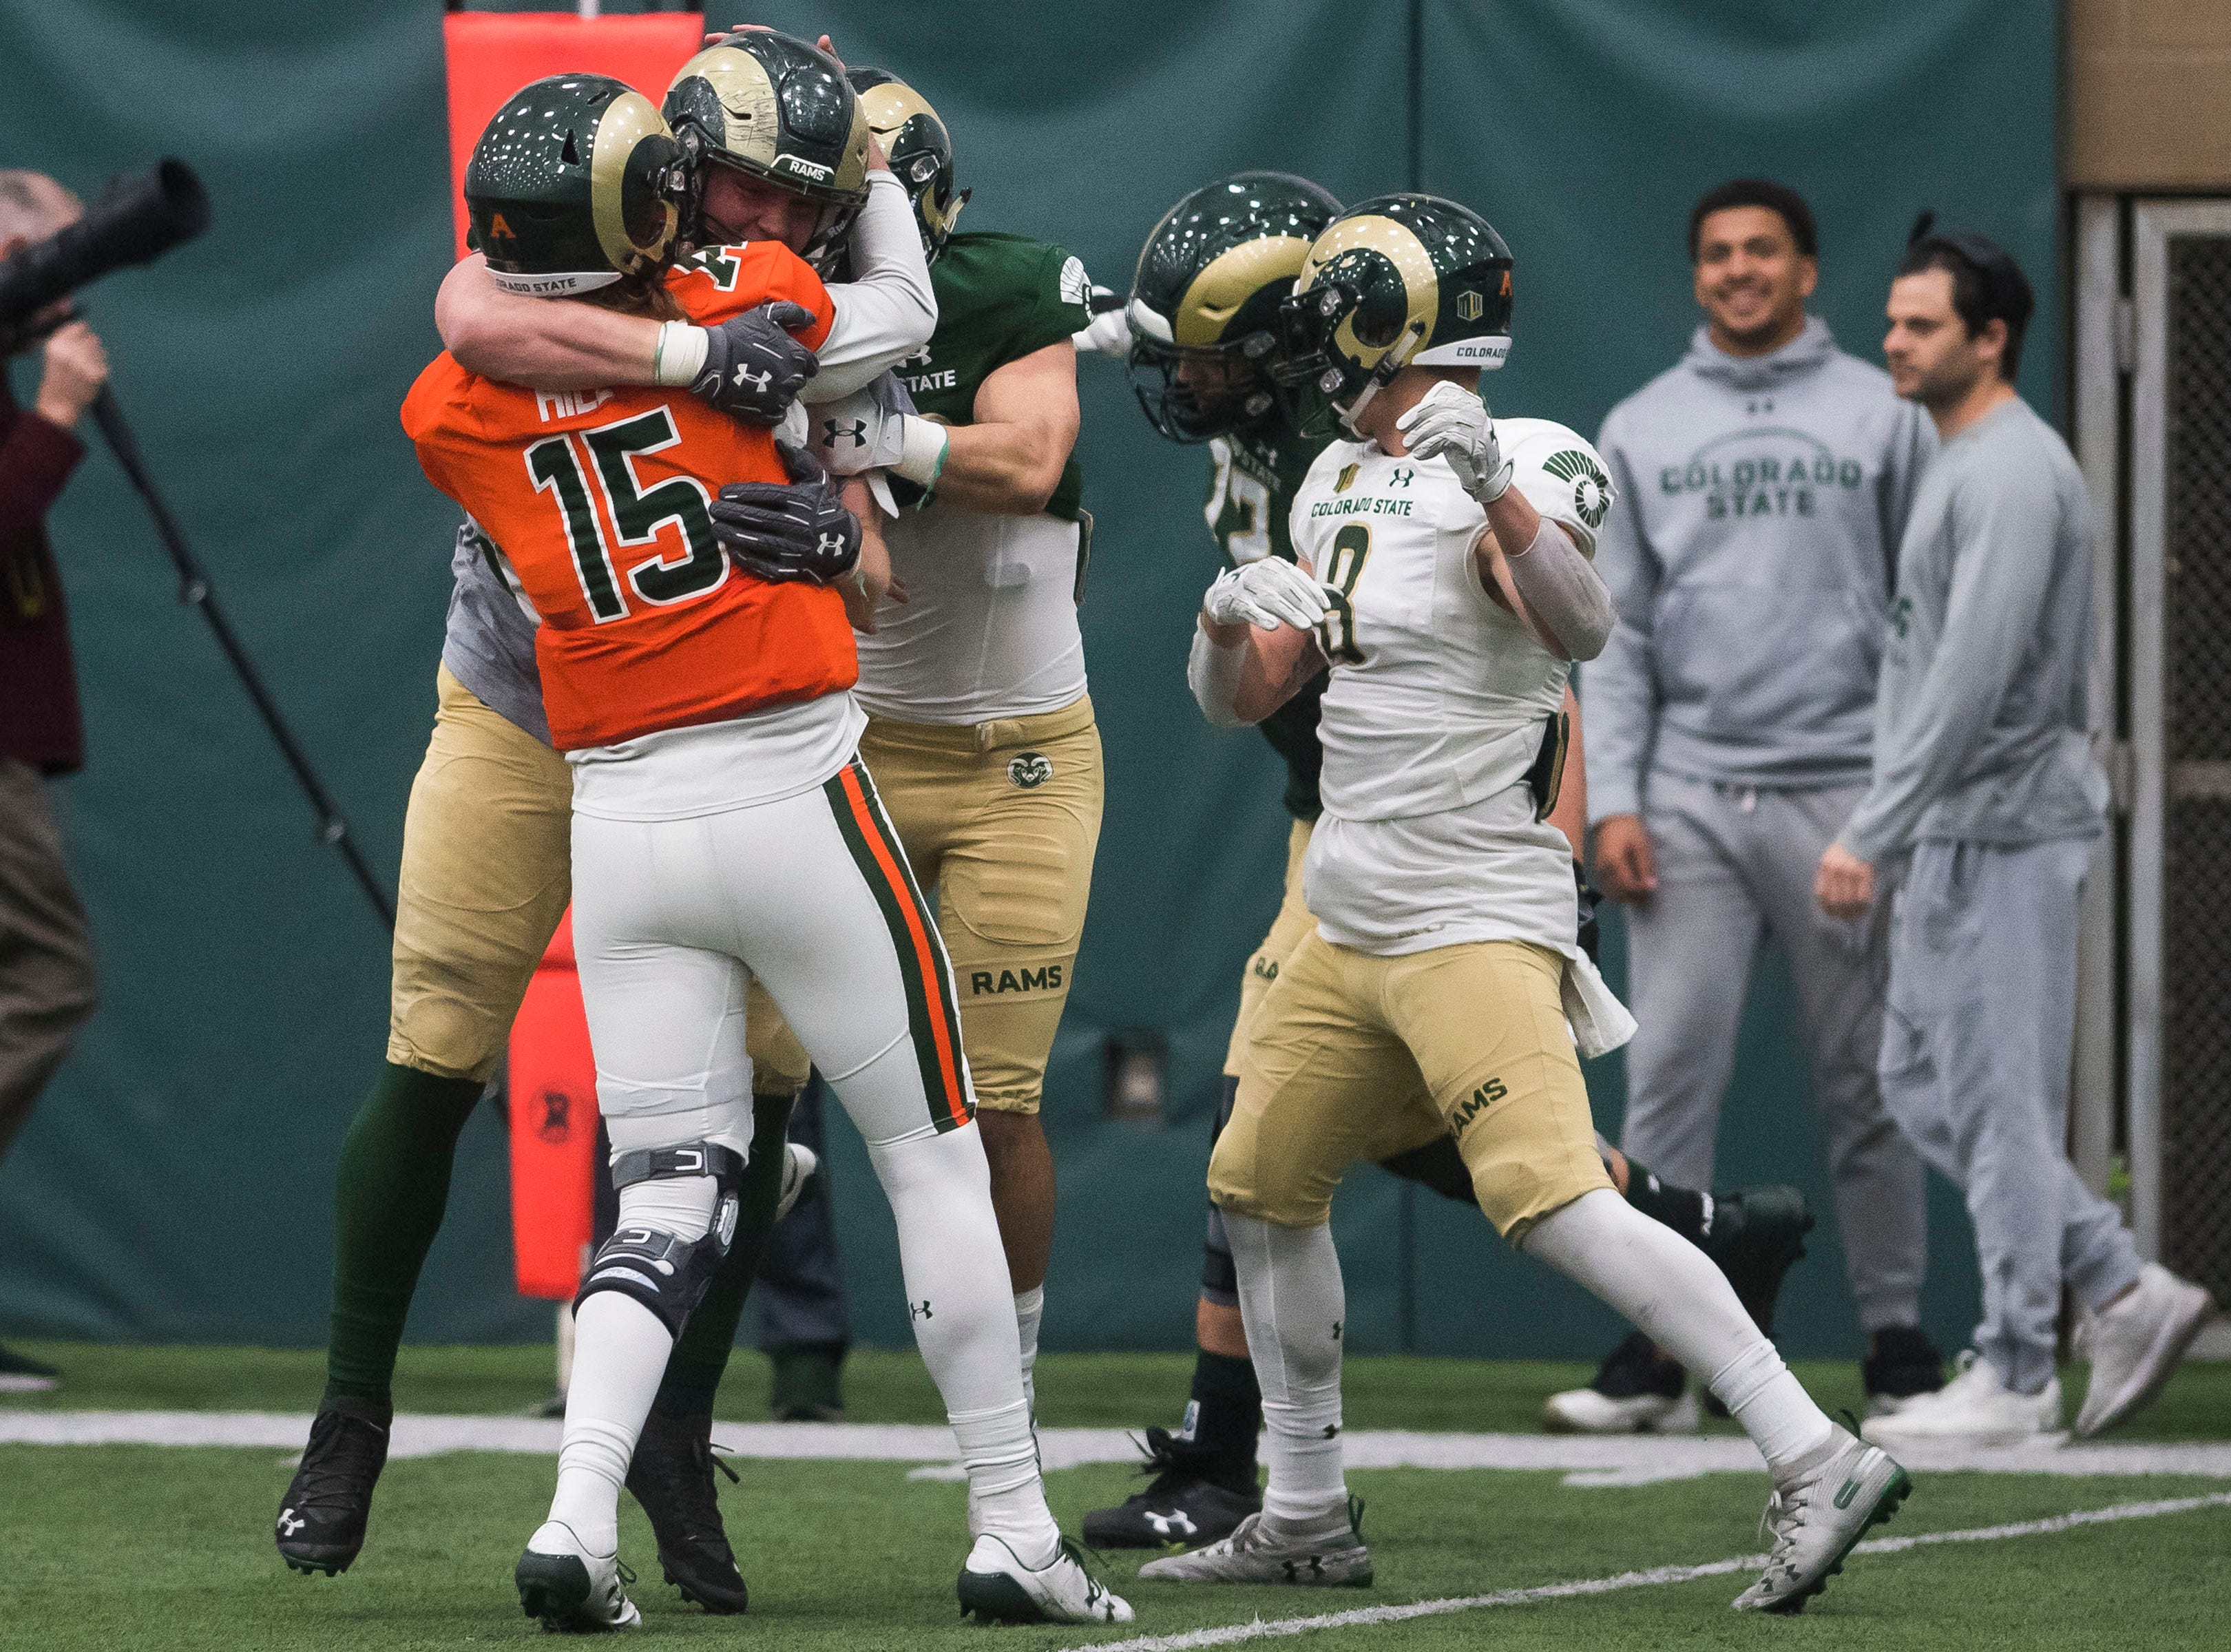 CSU sophomore tight end Trey McBride (85) hugs junior quarterback Colin Hill (15) after connecting for the winning touchdown reception during CSU's Spring game on Thursday, March 14, 2019, at their indoor practice facility in Fort Collins, Colo.